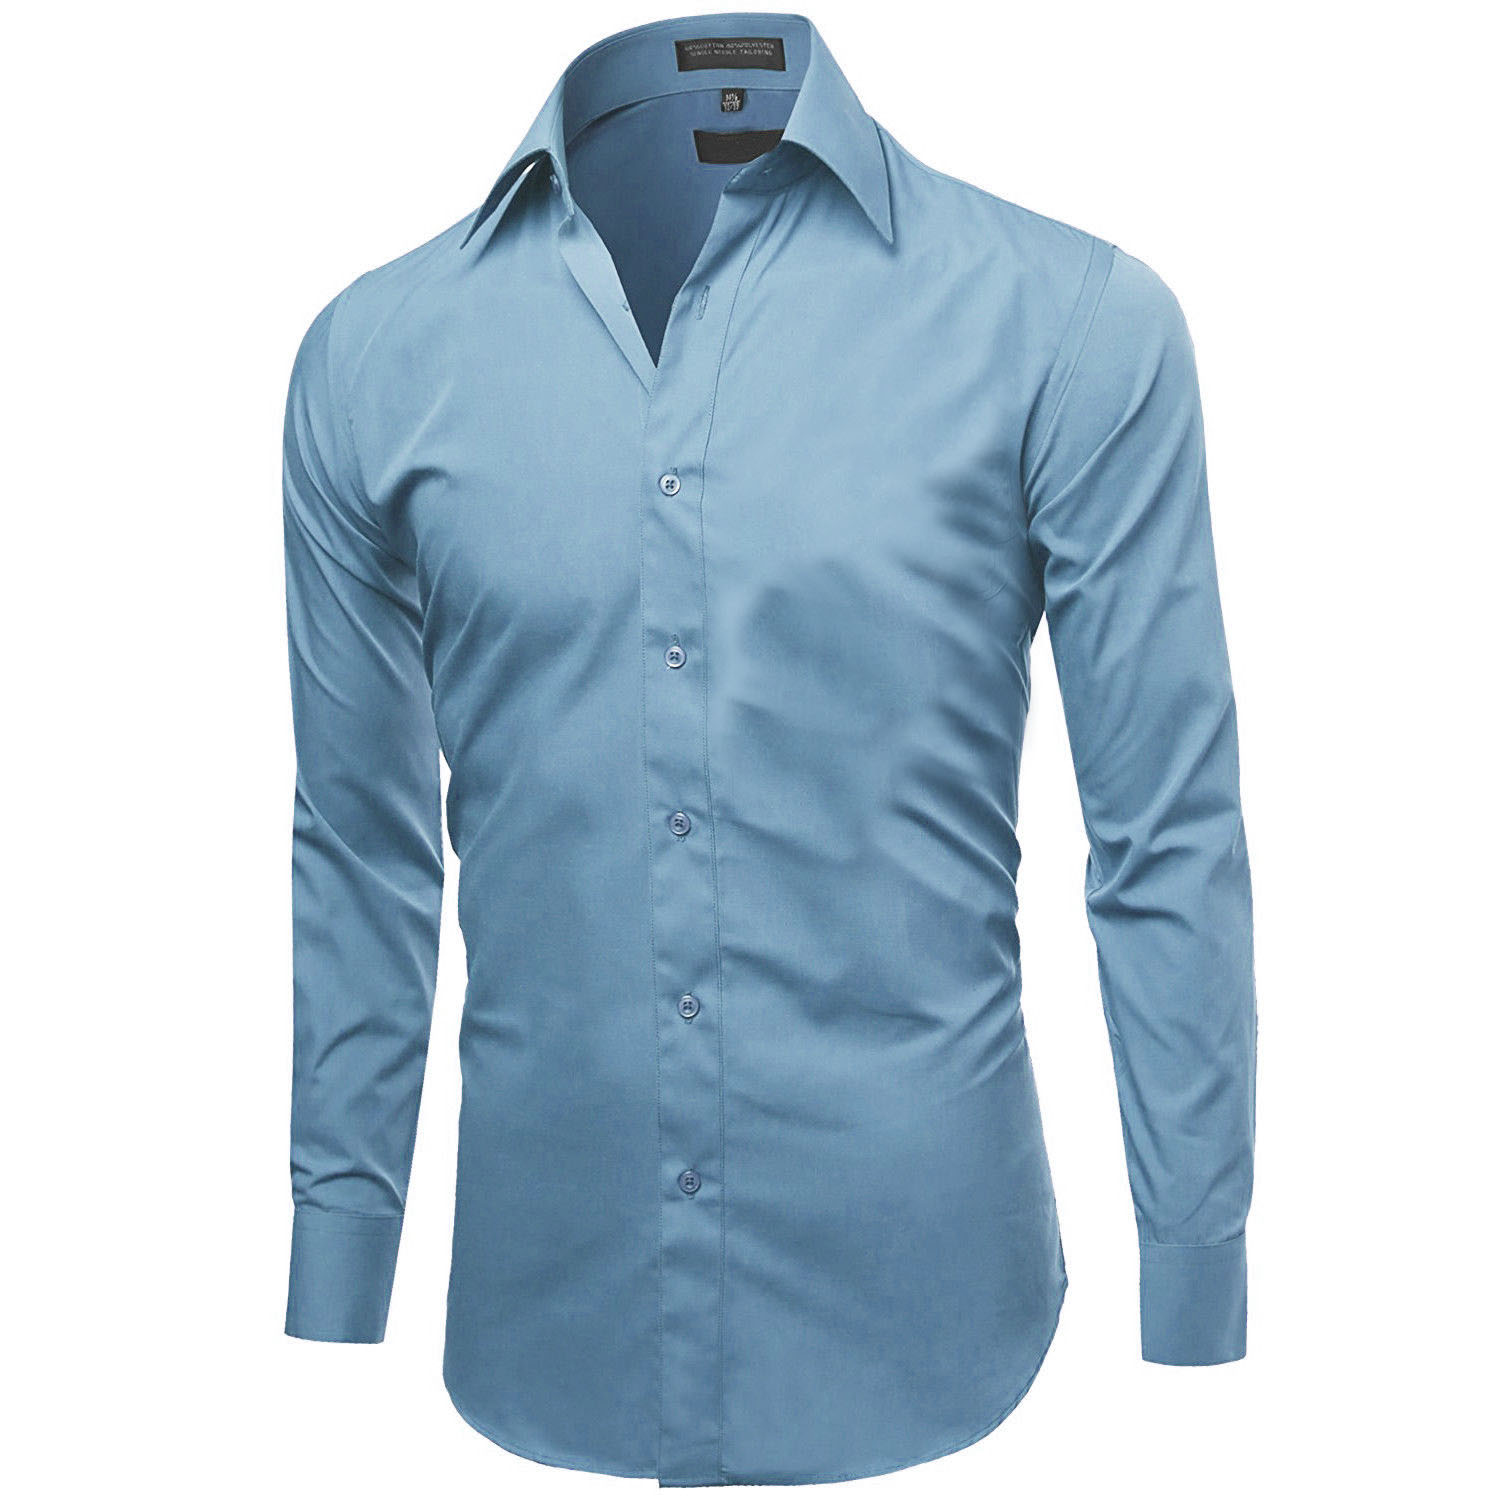 Omega-Italy-Men-039-s-Premium-Slim-Fit-Button-Up-Long-Sleeve-Solid-Color-Dress-Shirt thumbnail 38